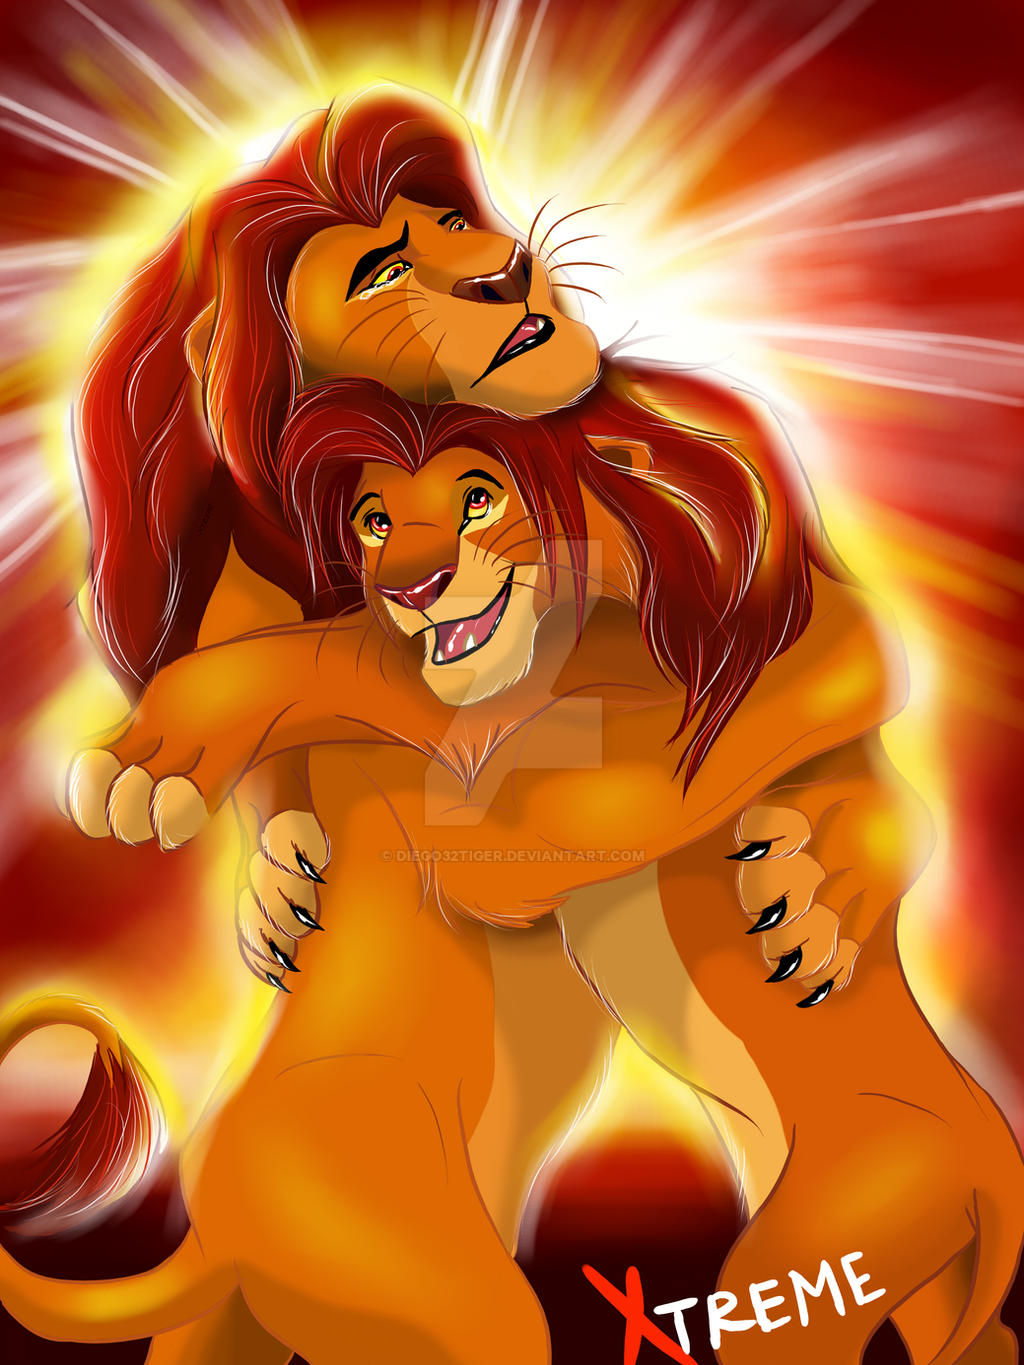 Uncategorized Lion King Mufasa the lion king mufasa and simba forever by diego32tiger on deviantart diego32tiger